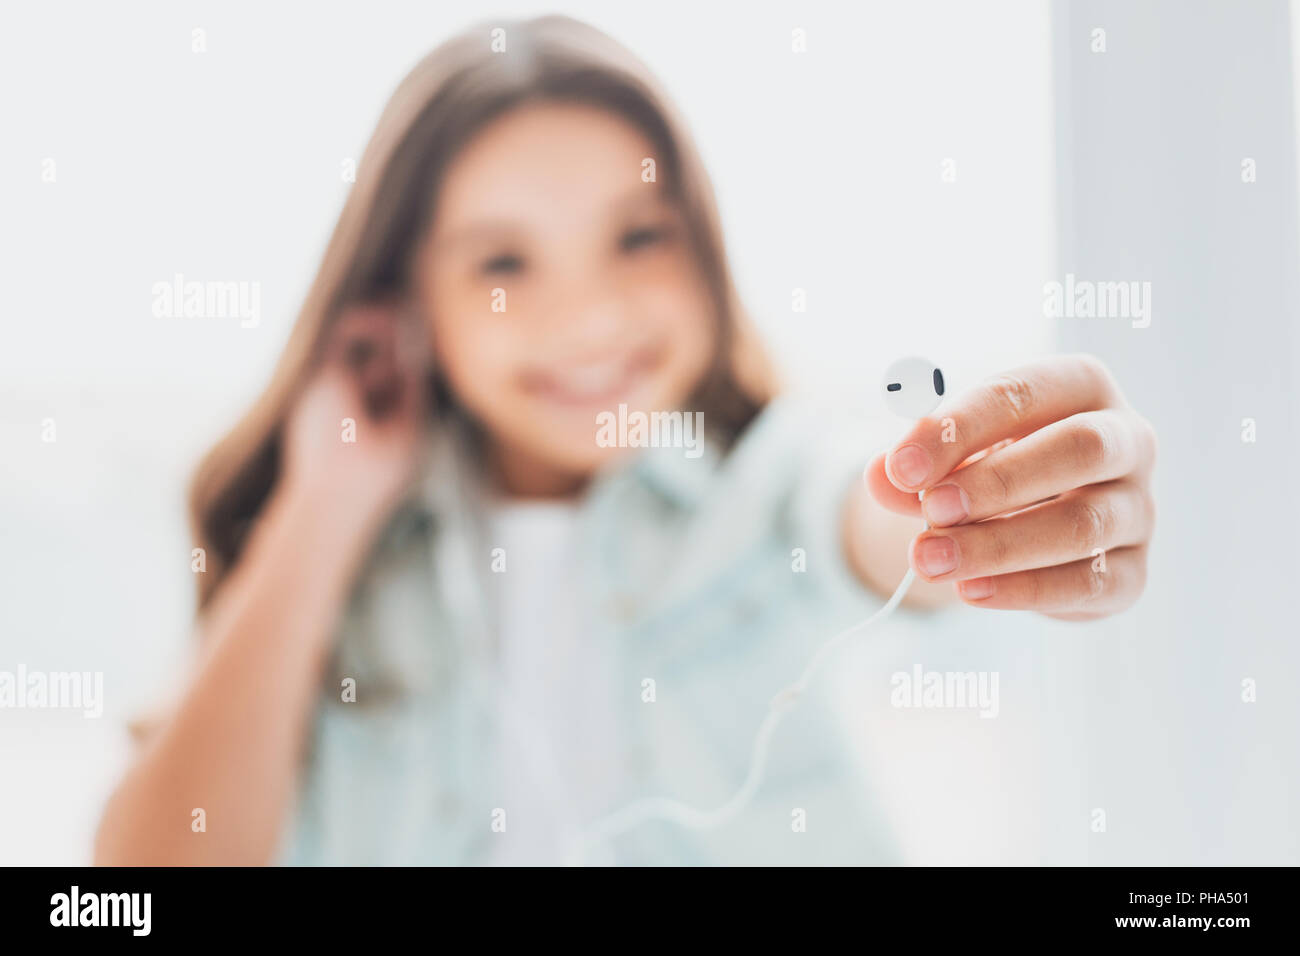 Modern daughter listening to music with earphones - Stock Image